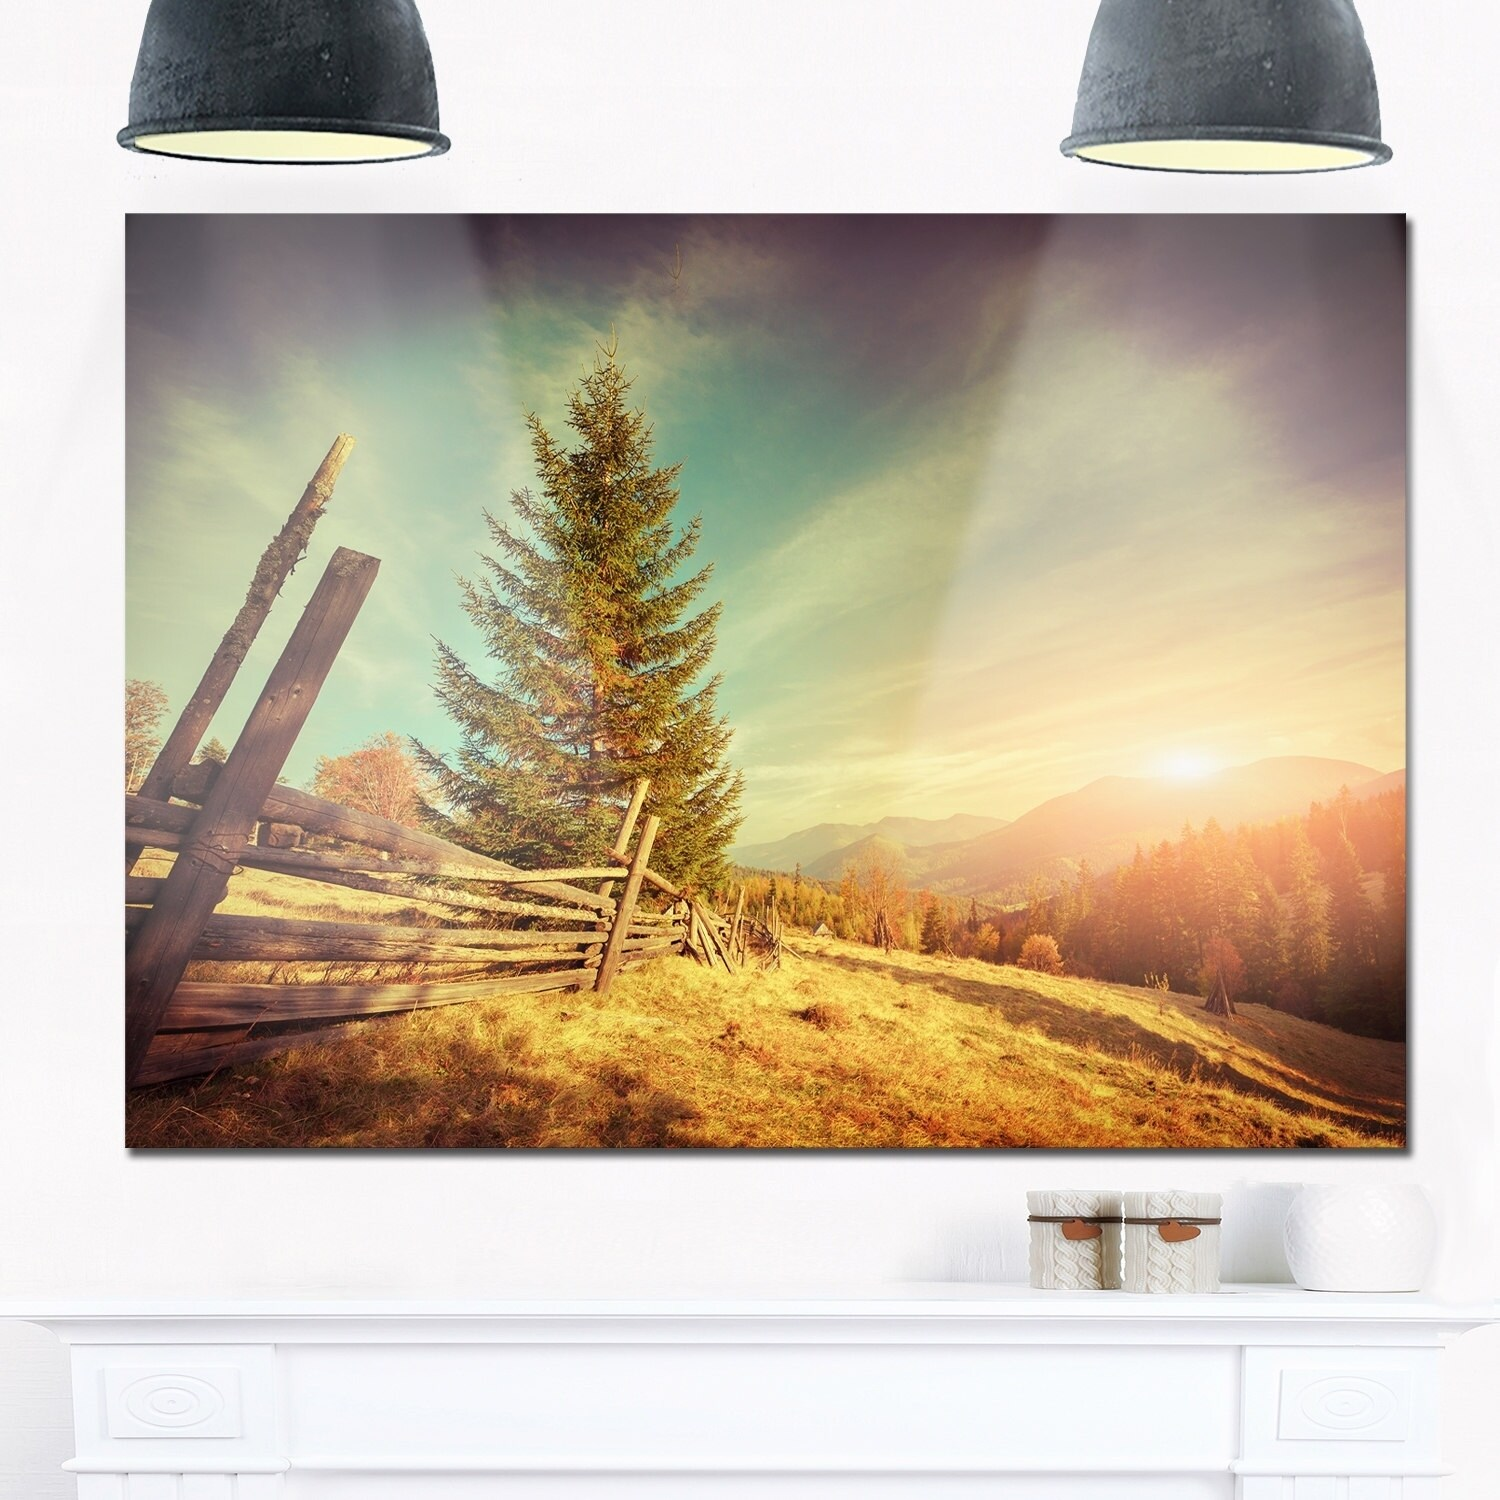 Shop Retro Style Autumn in Mountains - Landscape Photo Glossy Metal ...